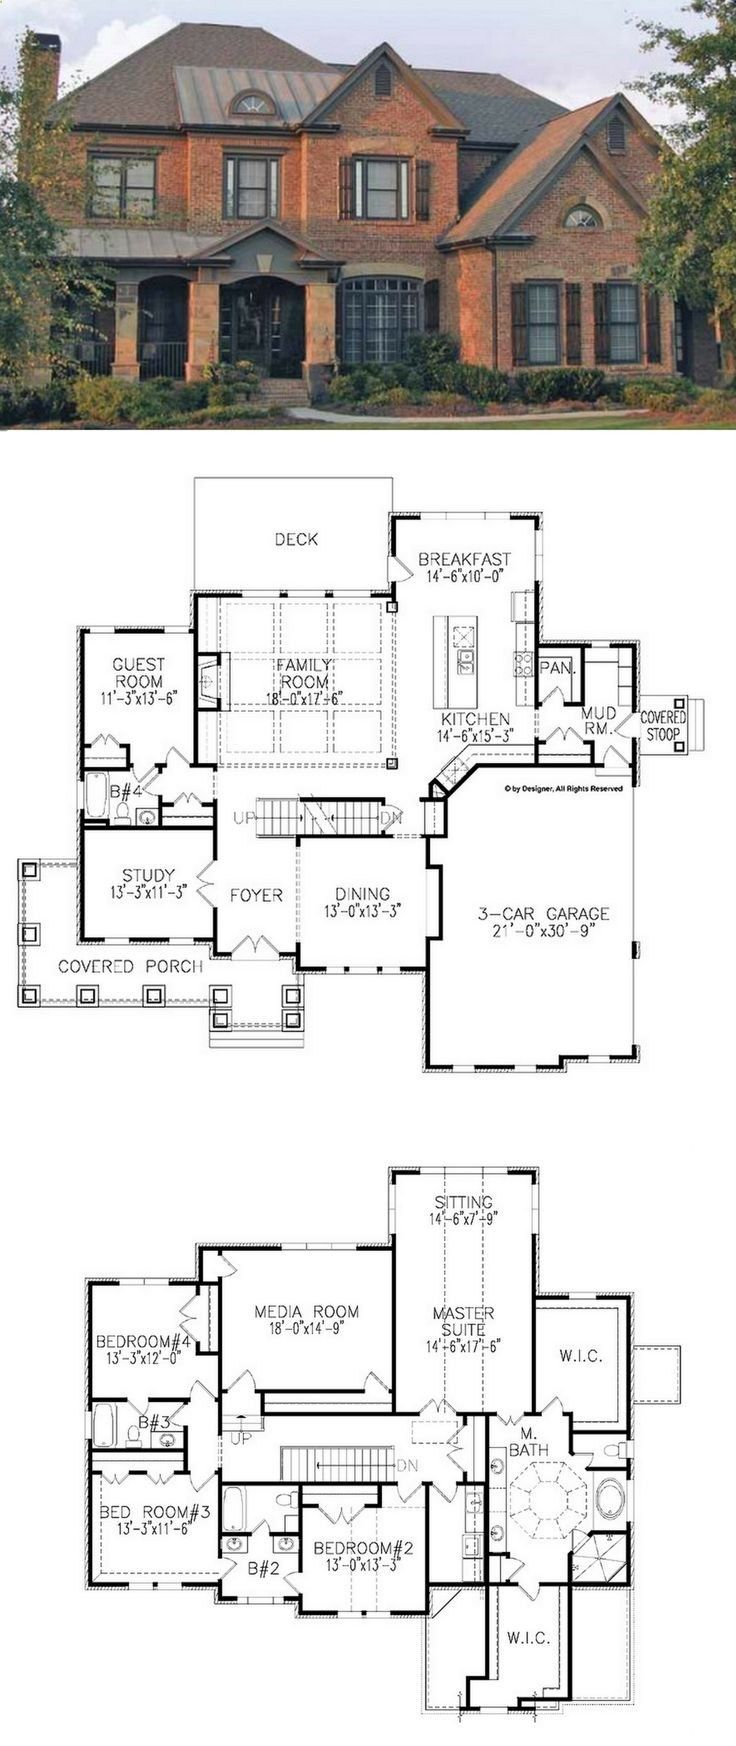 Traditional House Plan with 3962 Square Feet and 5 Bedrooms from Dream Home Source   House Plan Code DHSW68890